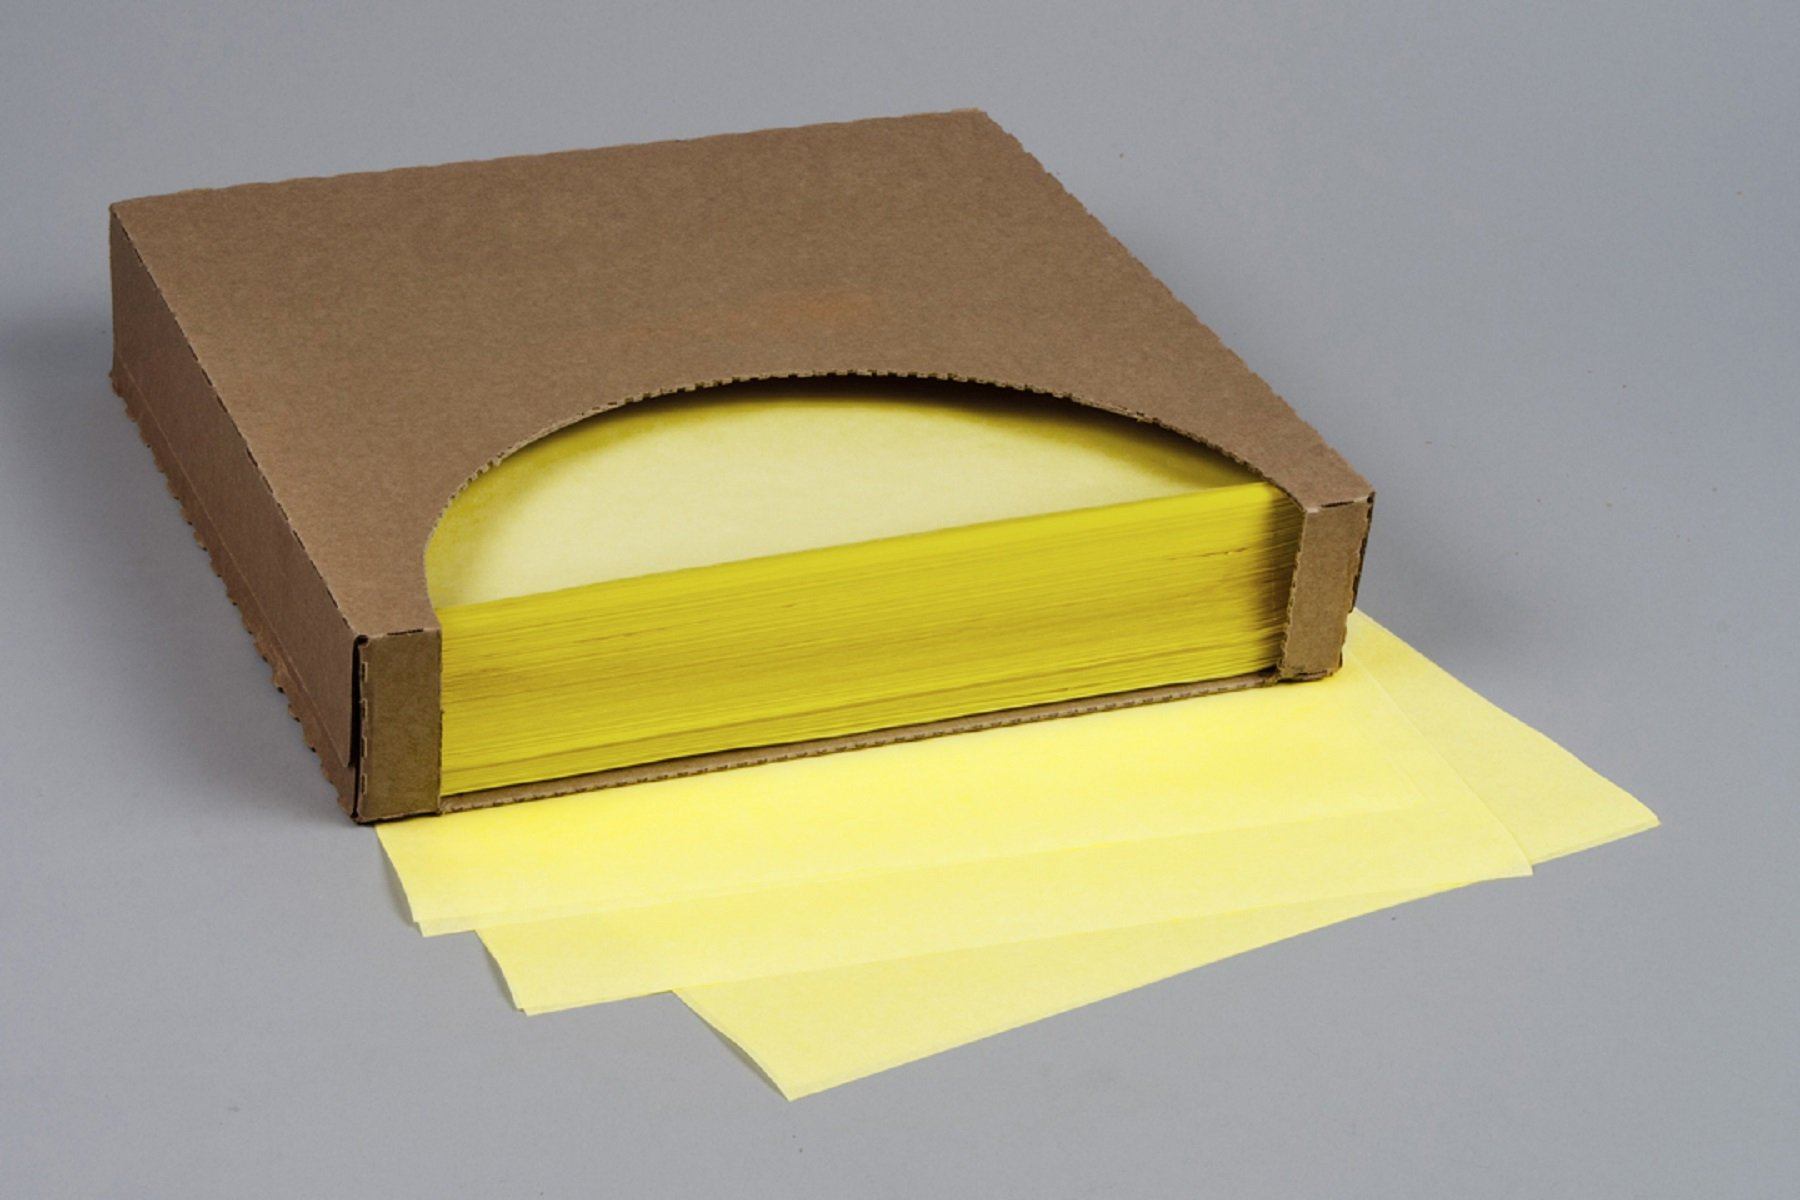 12x12 Waxed Paper Wrap or Basket Liner Sheet, CANARY YELLOW Color, 1000 Sheets Per Box, 7B4-YC